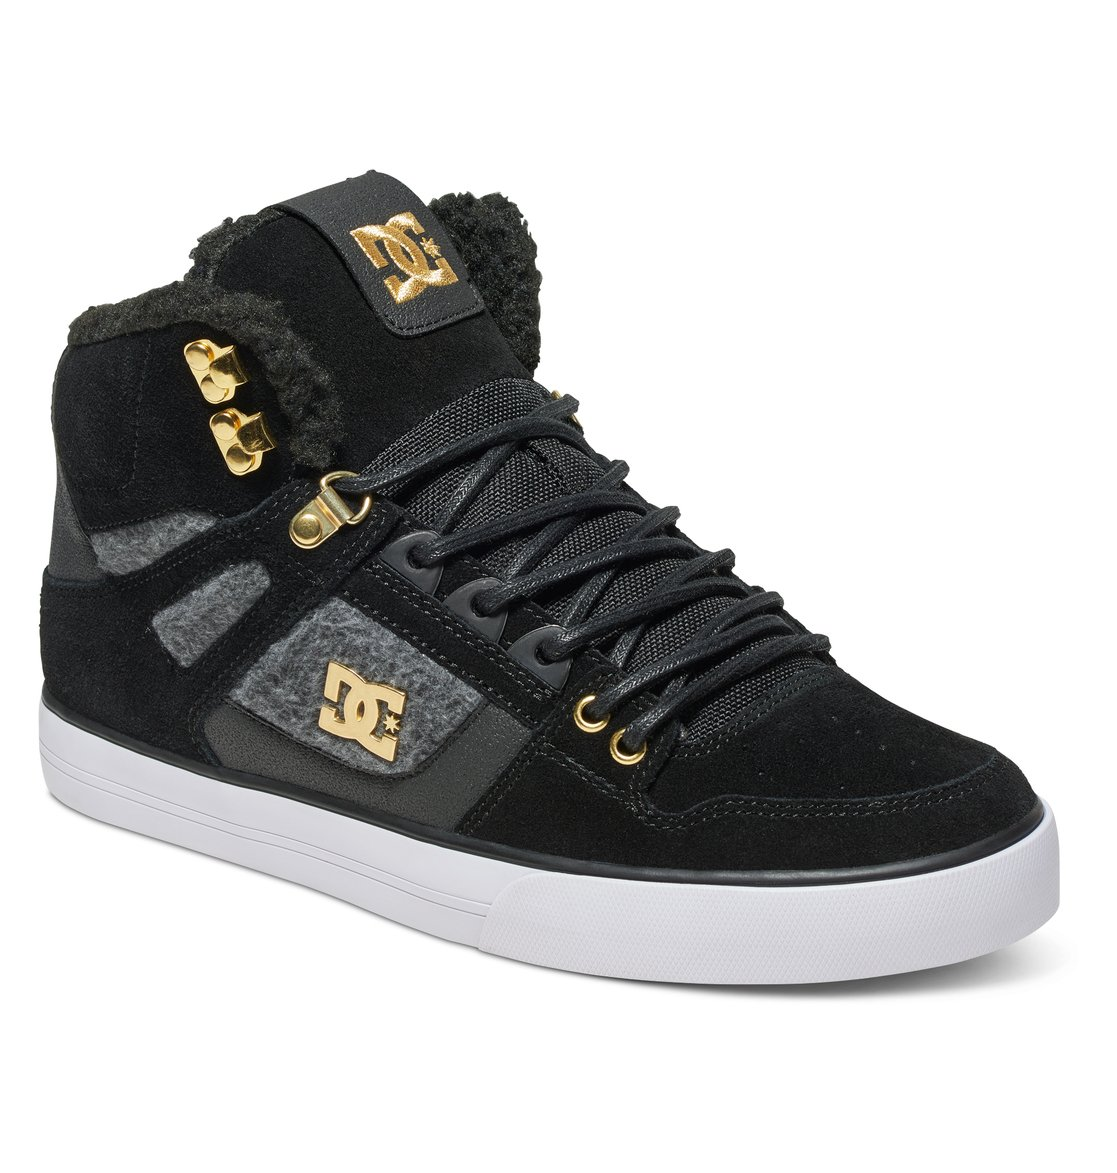 Taille Dc Shoes